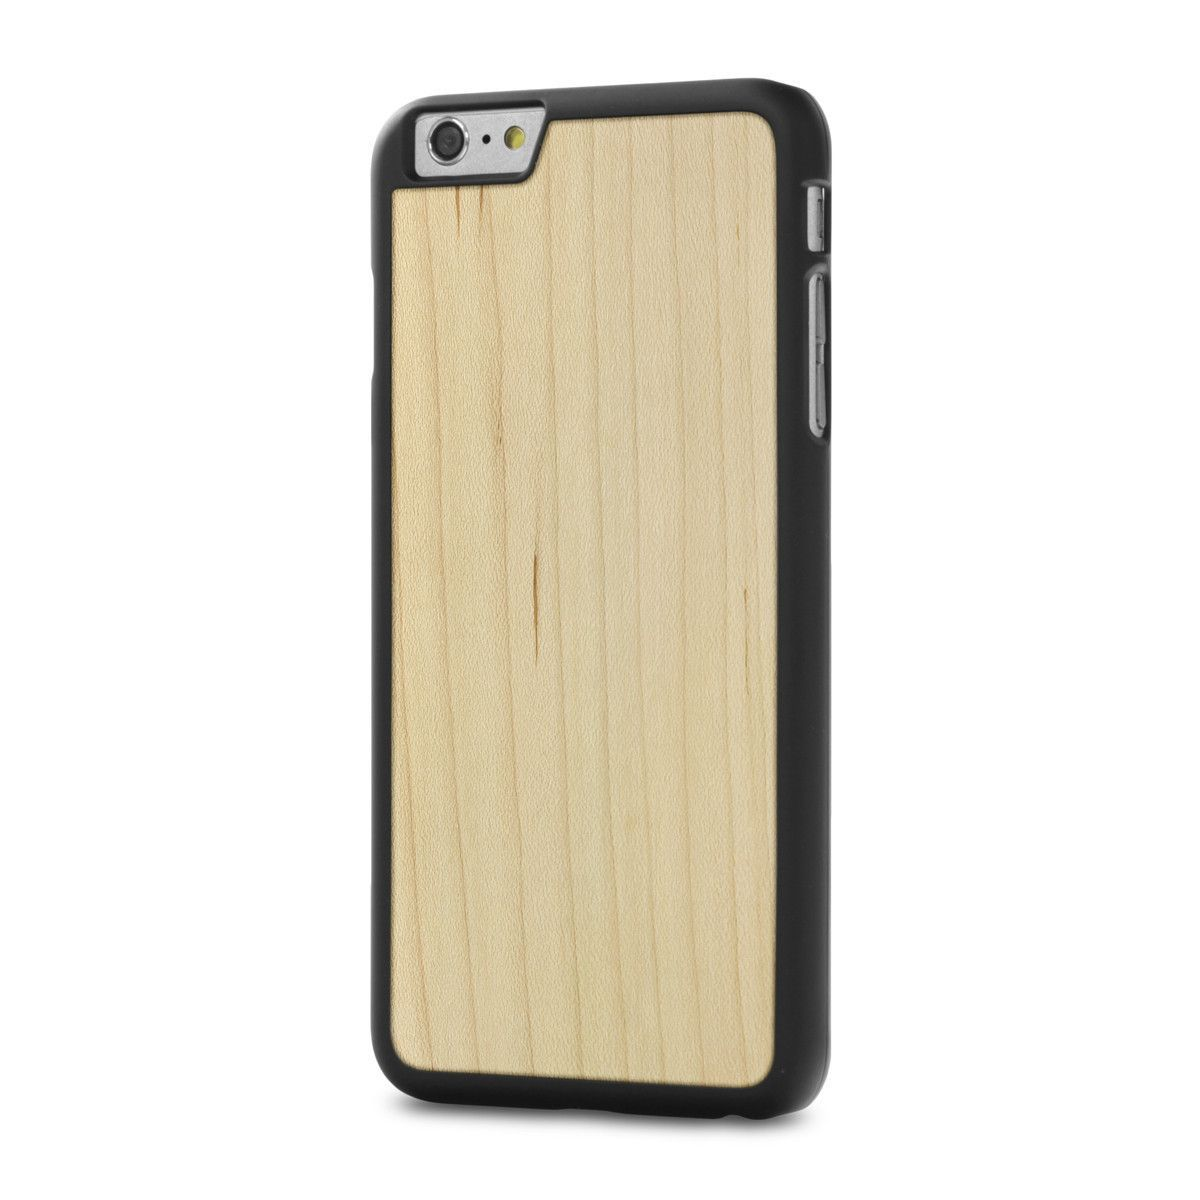 iPhone 6/6s Plus — #WoodBack Snap Case